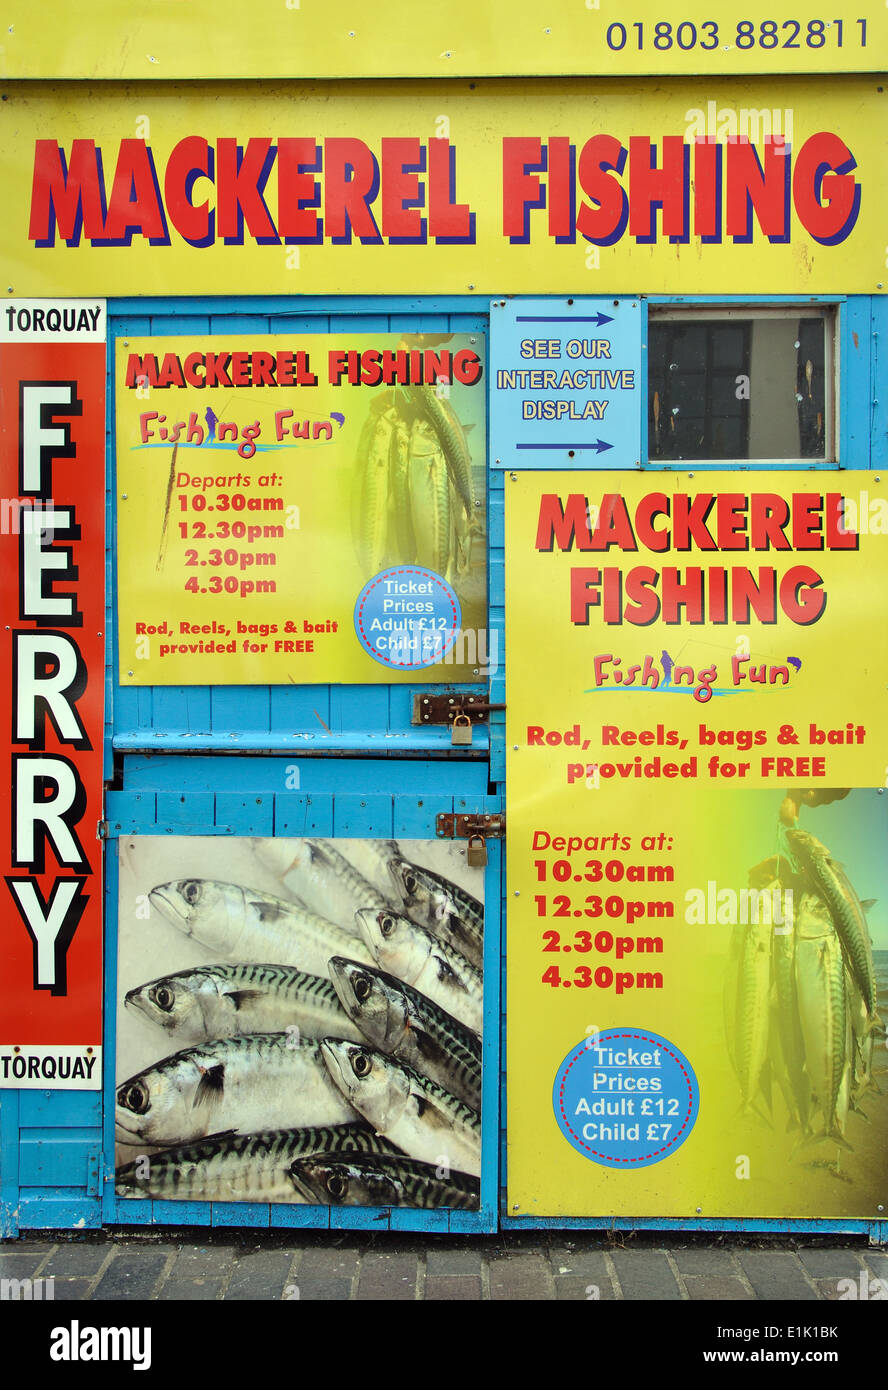 adverts on kiosk for mackerel fishing boat trips, Brixham, Devon, England, UK - Stock Image